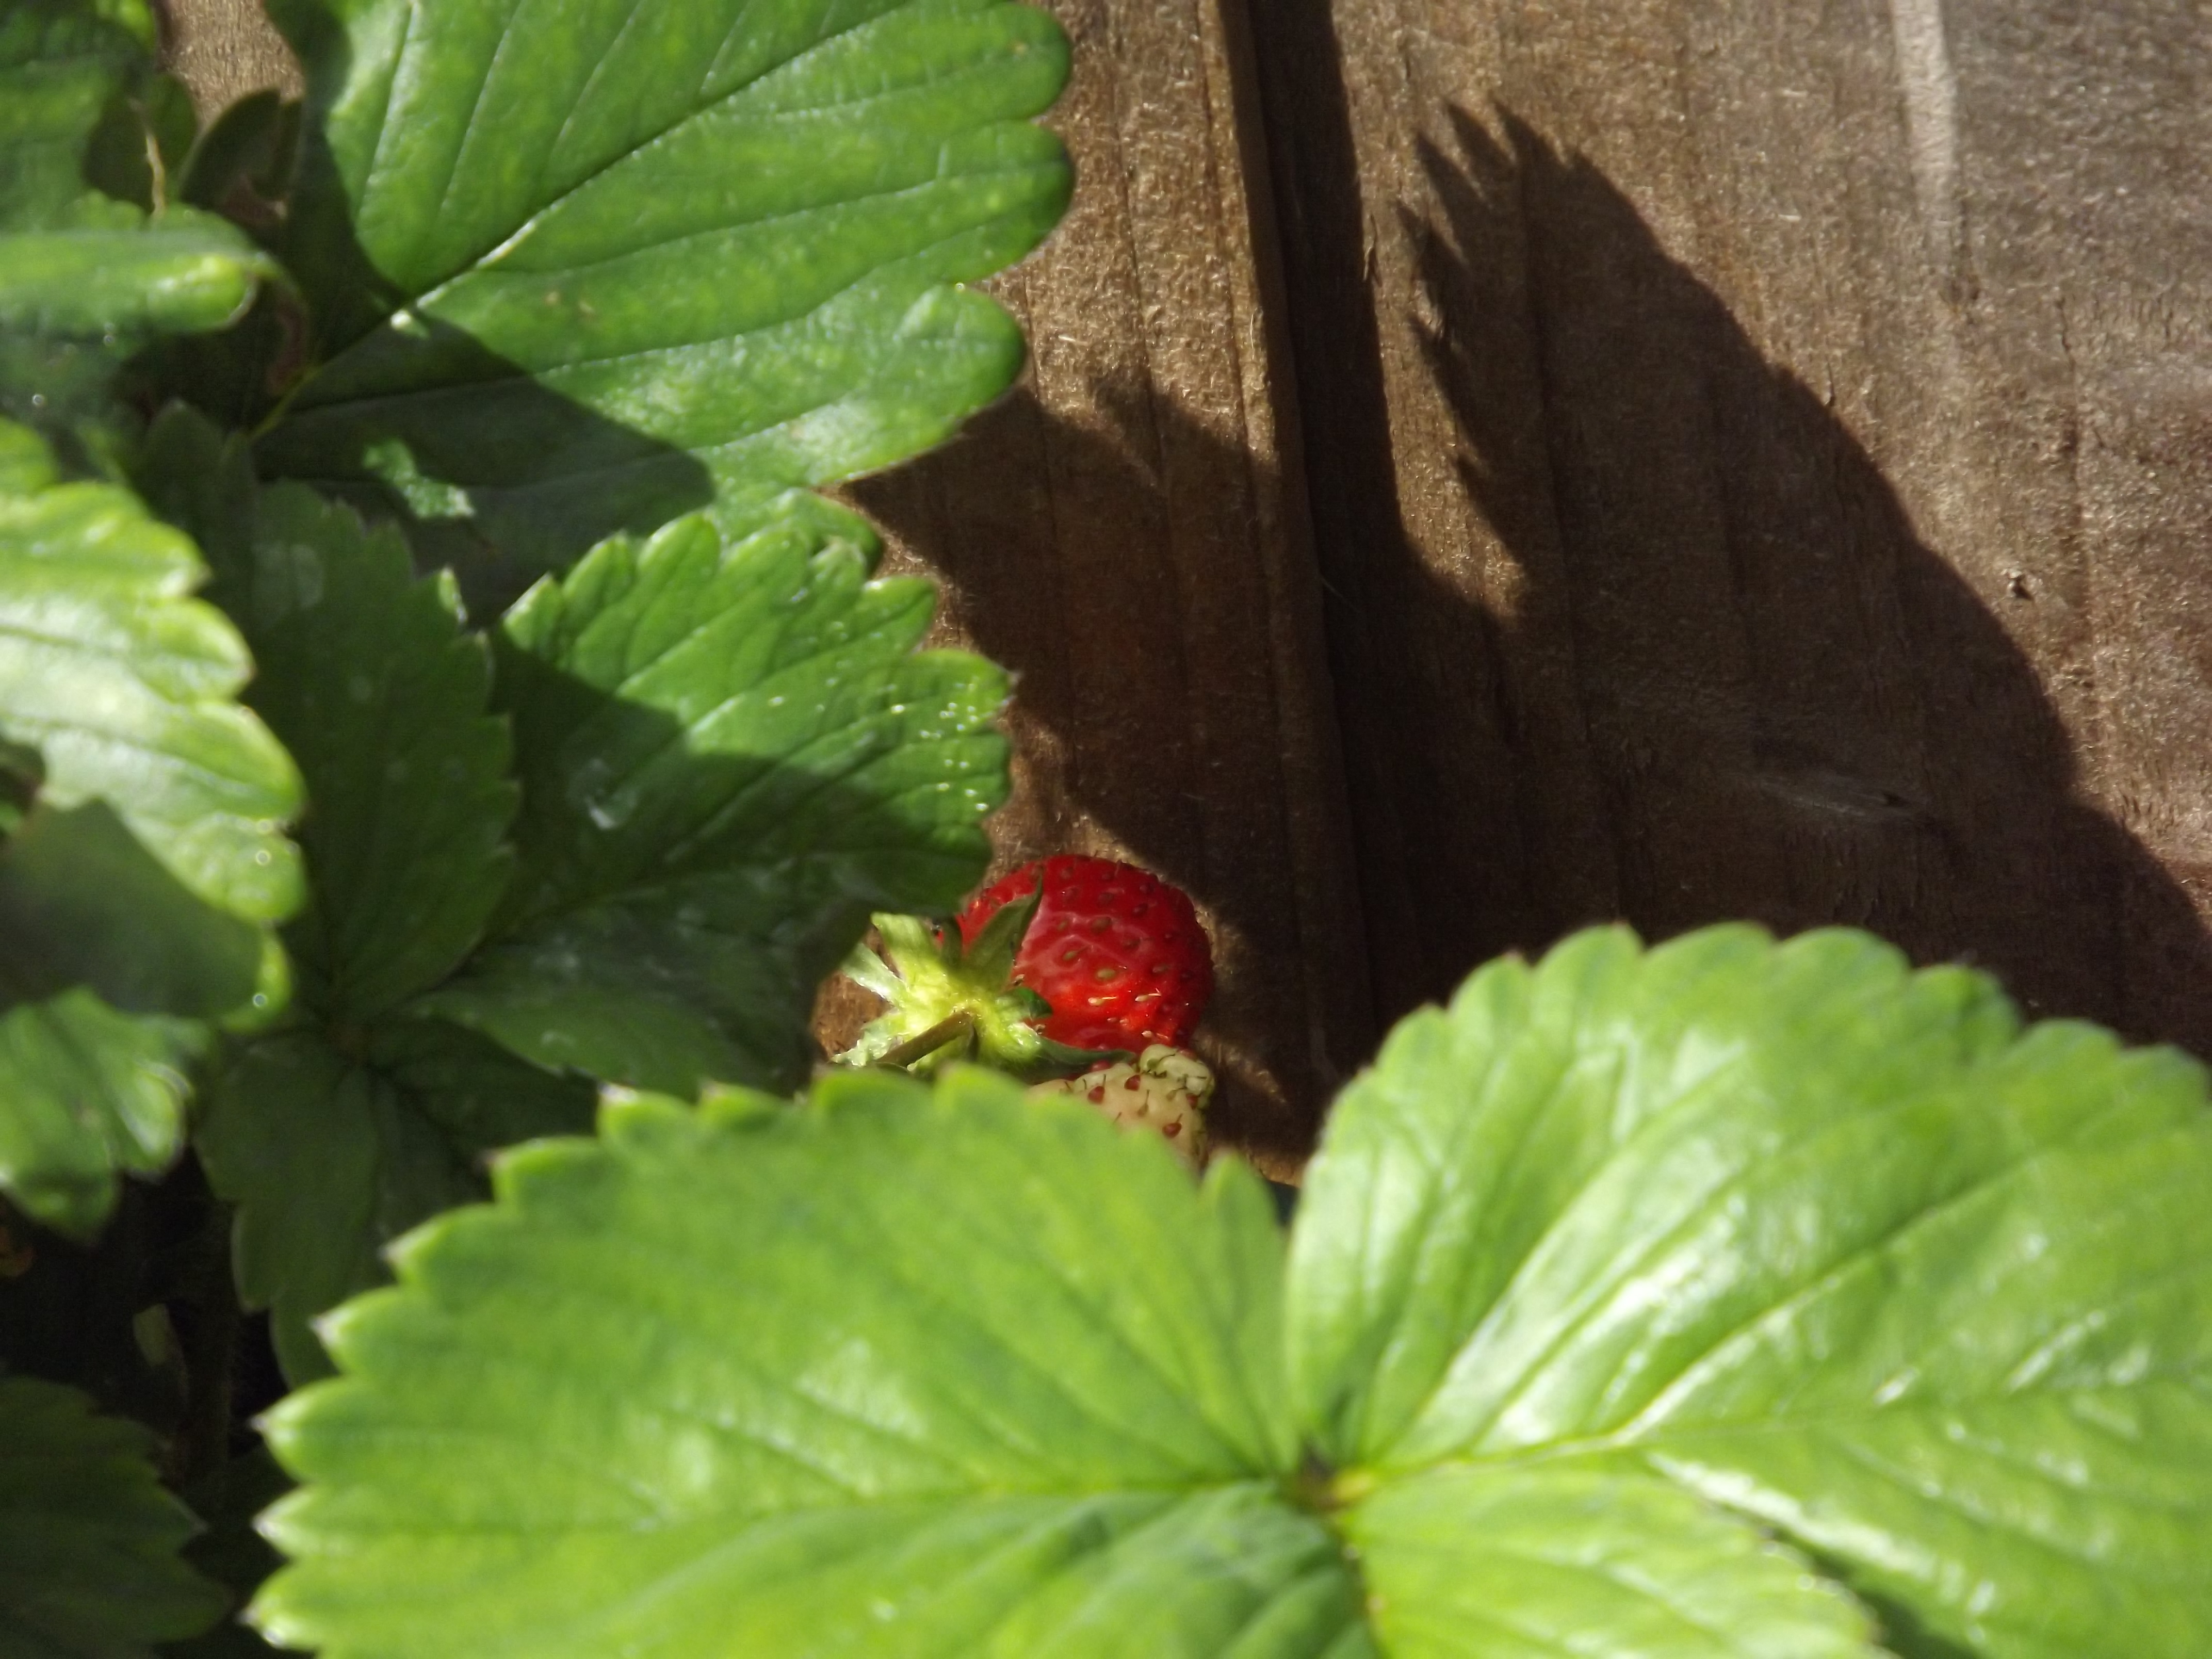 strawberry lurking among leaves